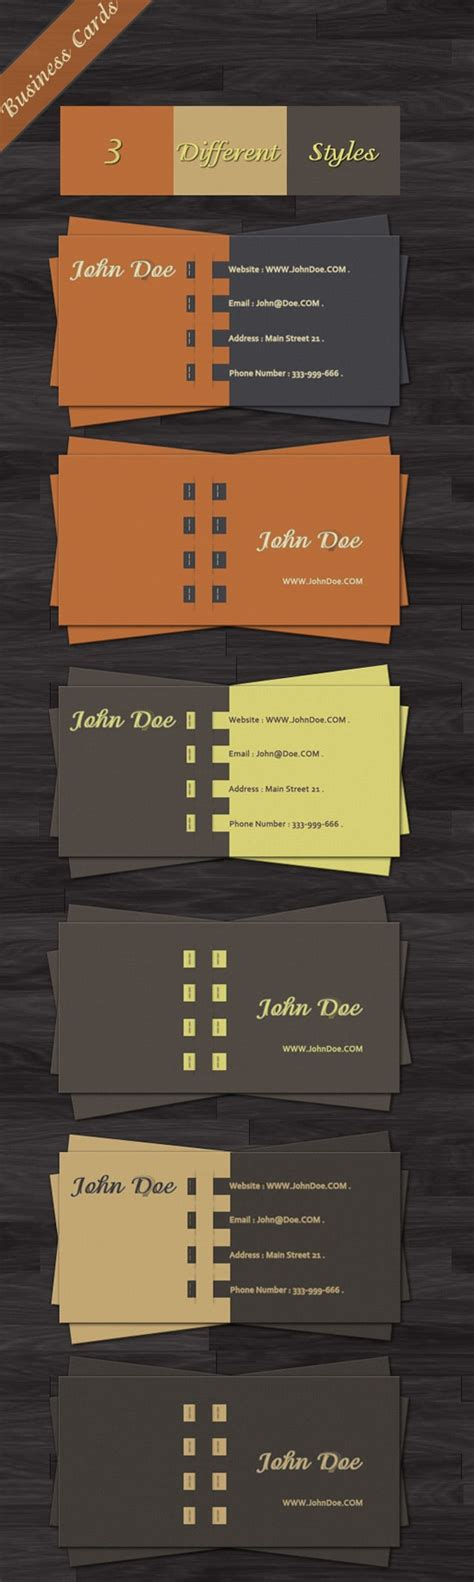 Inkscape Template Business Card by 100 Free Business Card Templates Designrfix